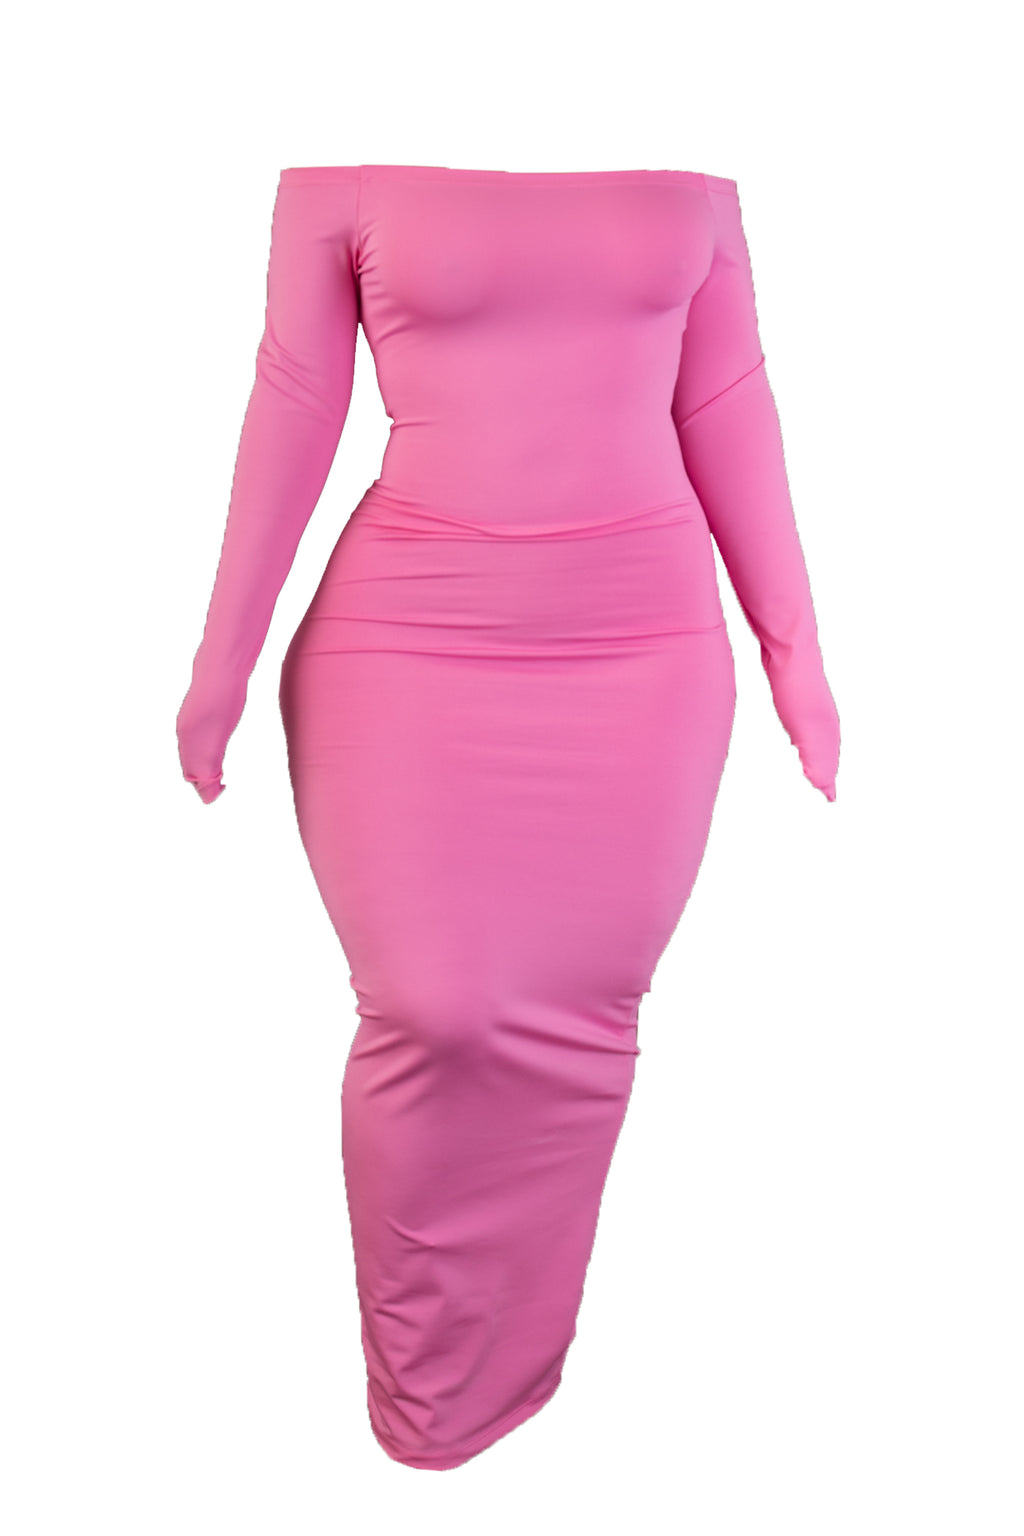 The PERFECT PINK Wifey Shaping Maxi 3